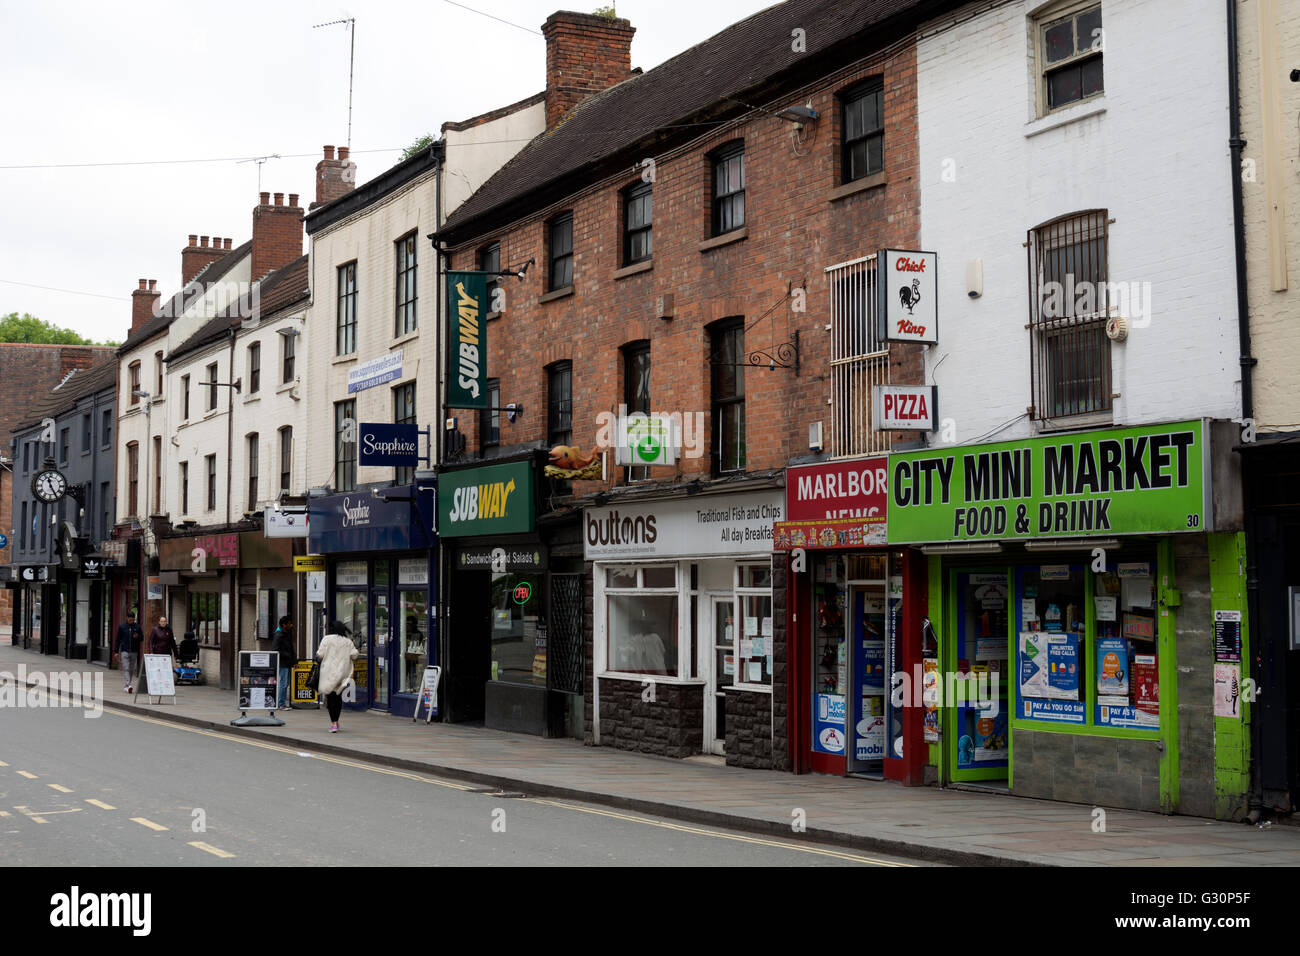 Shops in Burges, Coventry, UK - Stock Image